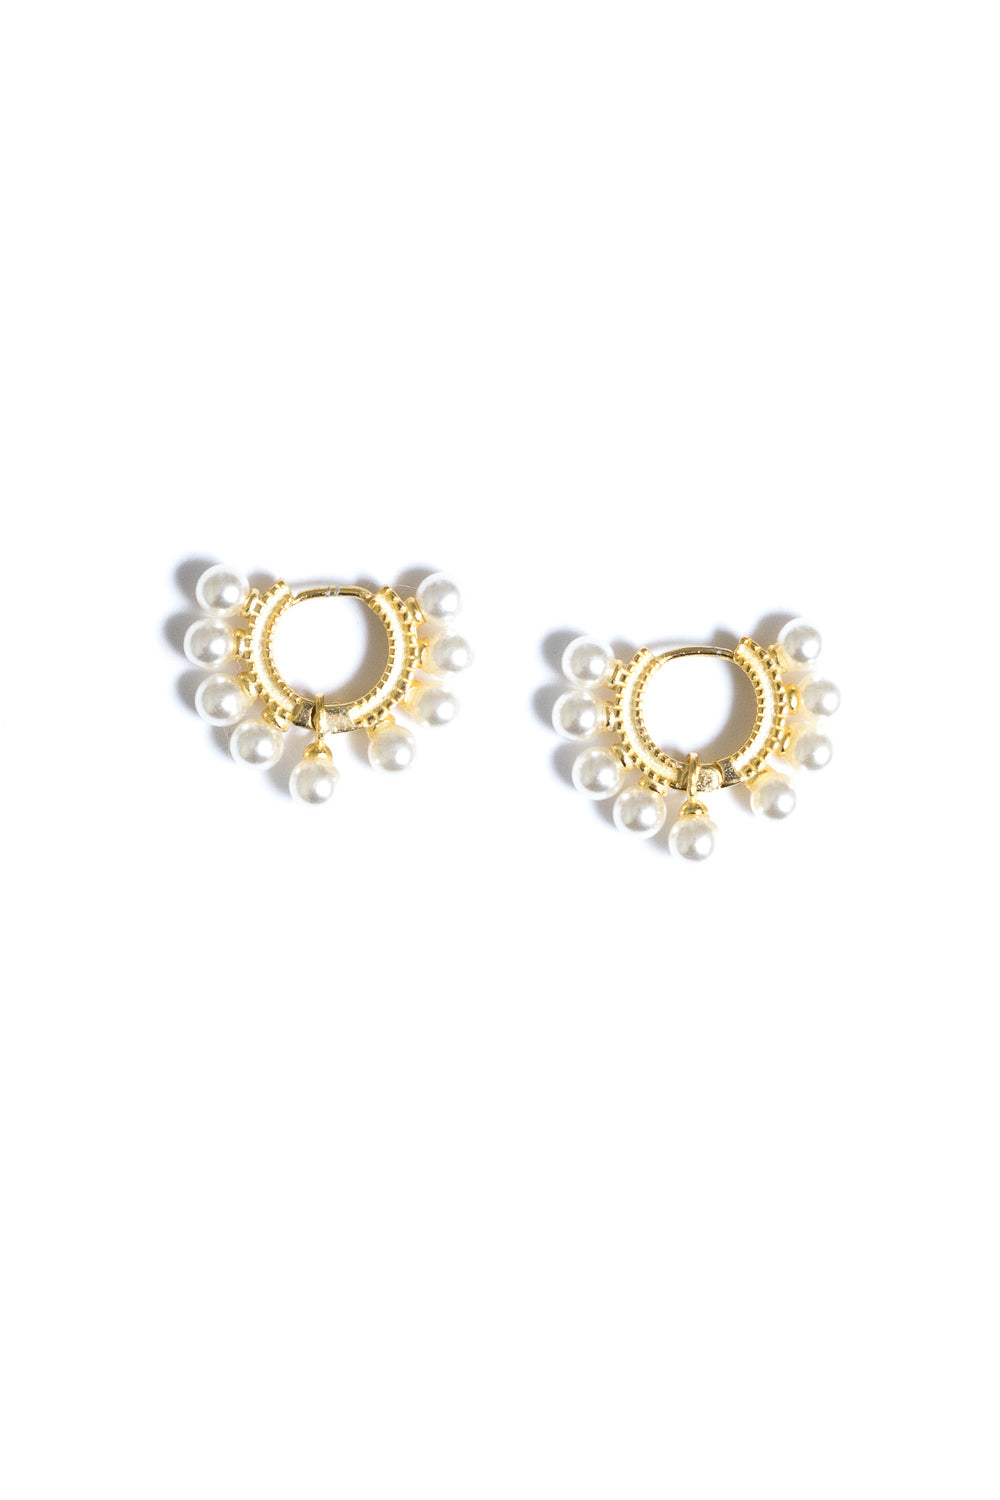 pearl mini gold huggie hoop pearl earrings by janna conner